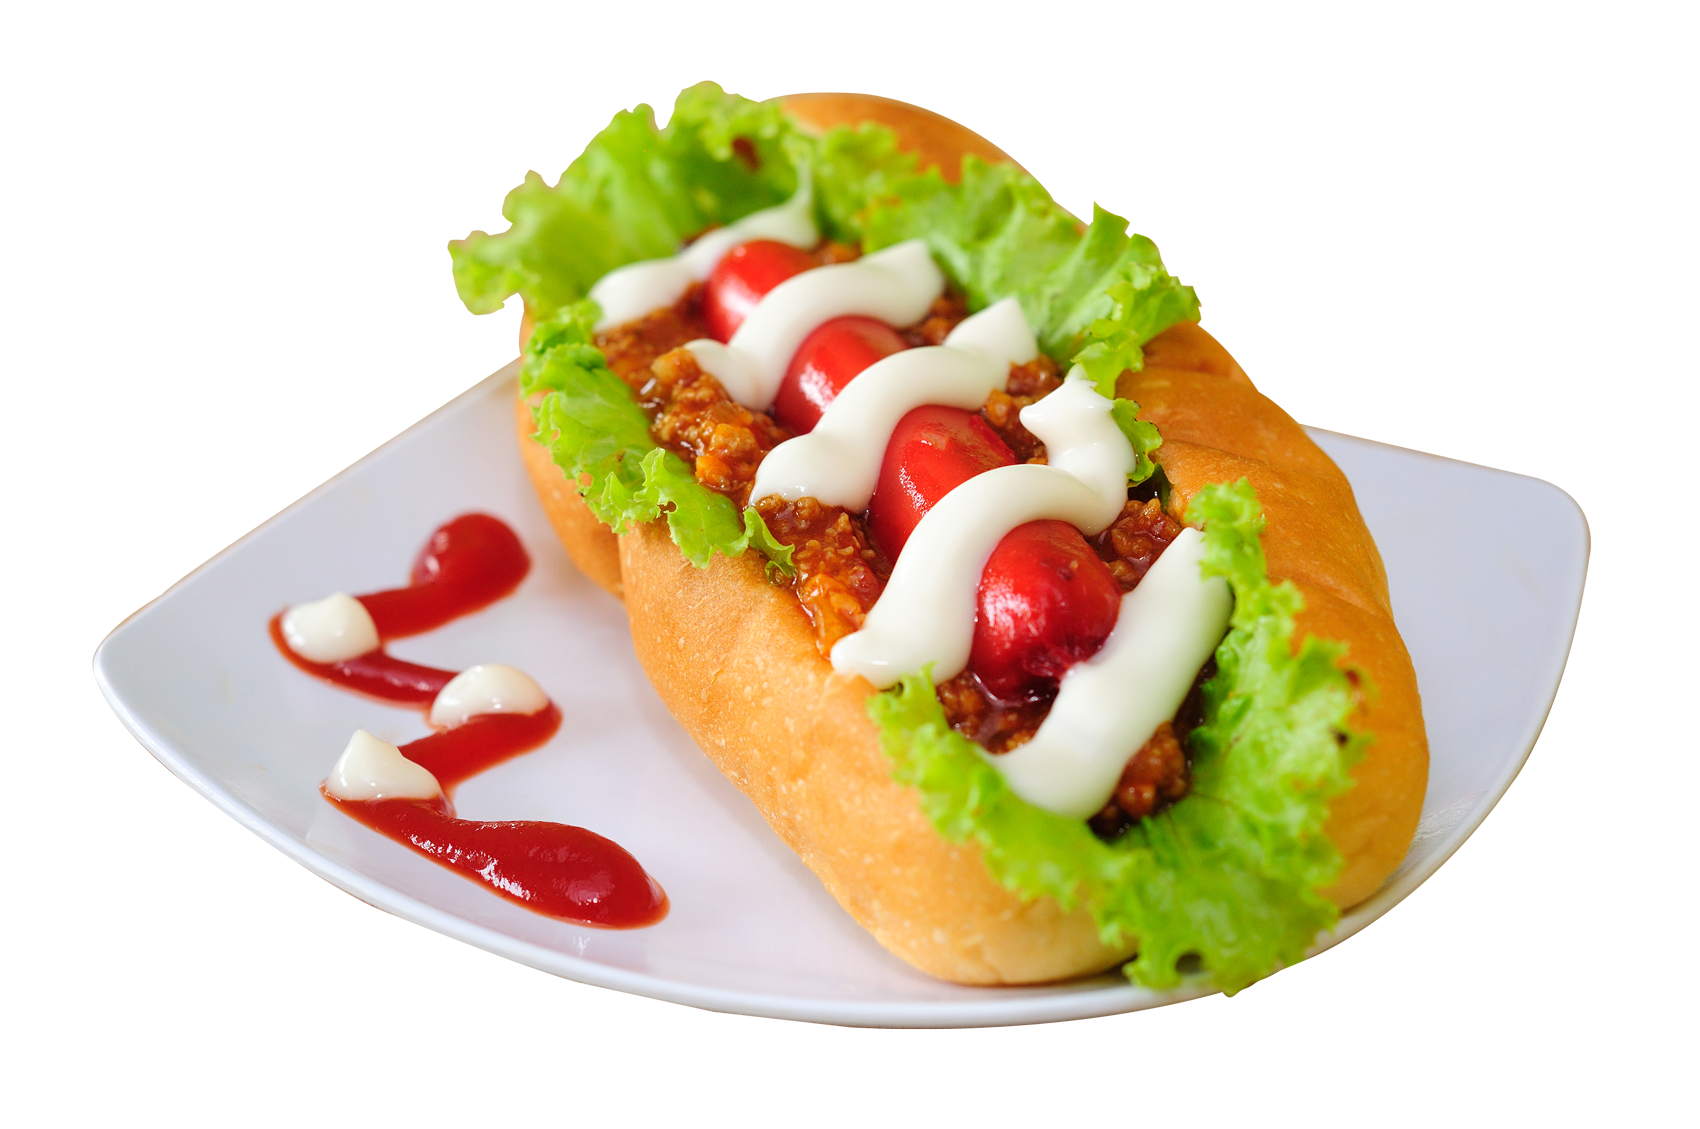 Hot Dog Png - This high quality free PNG image without any background is about food,  hotdog and sausage